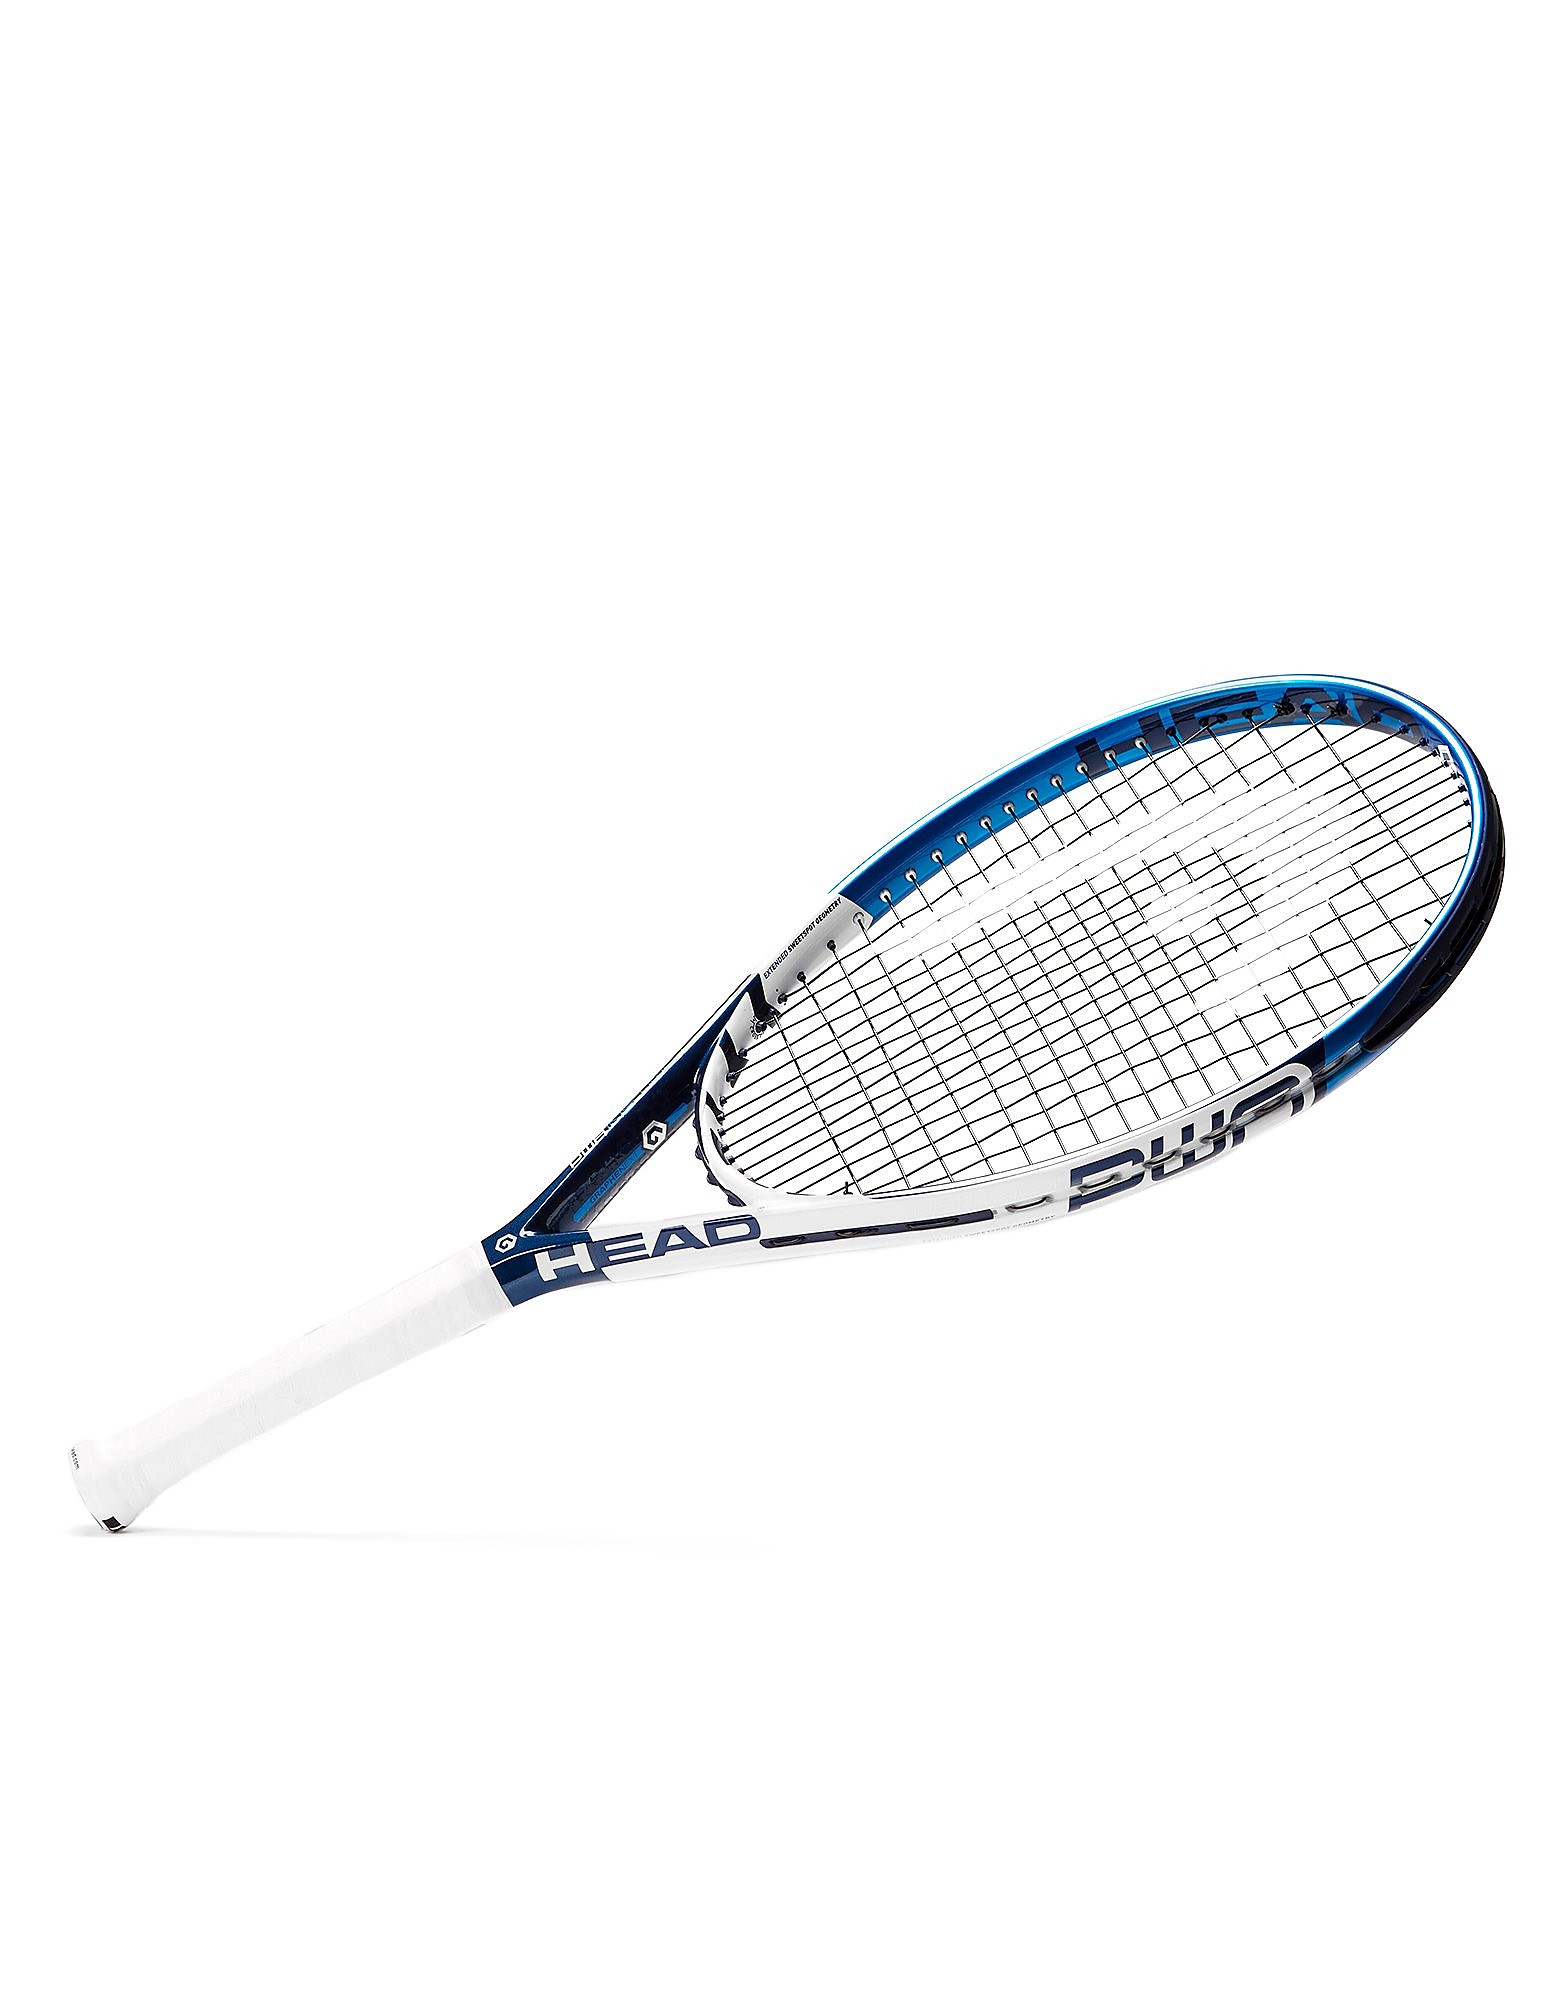 Head HEAD Graphene XT Instinct PWR Racket